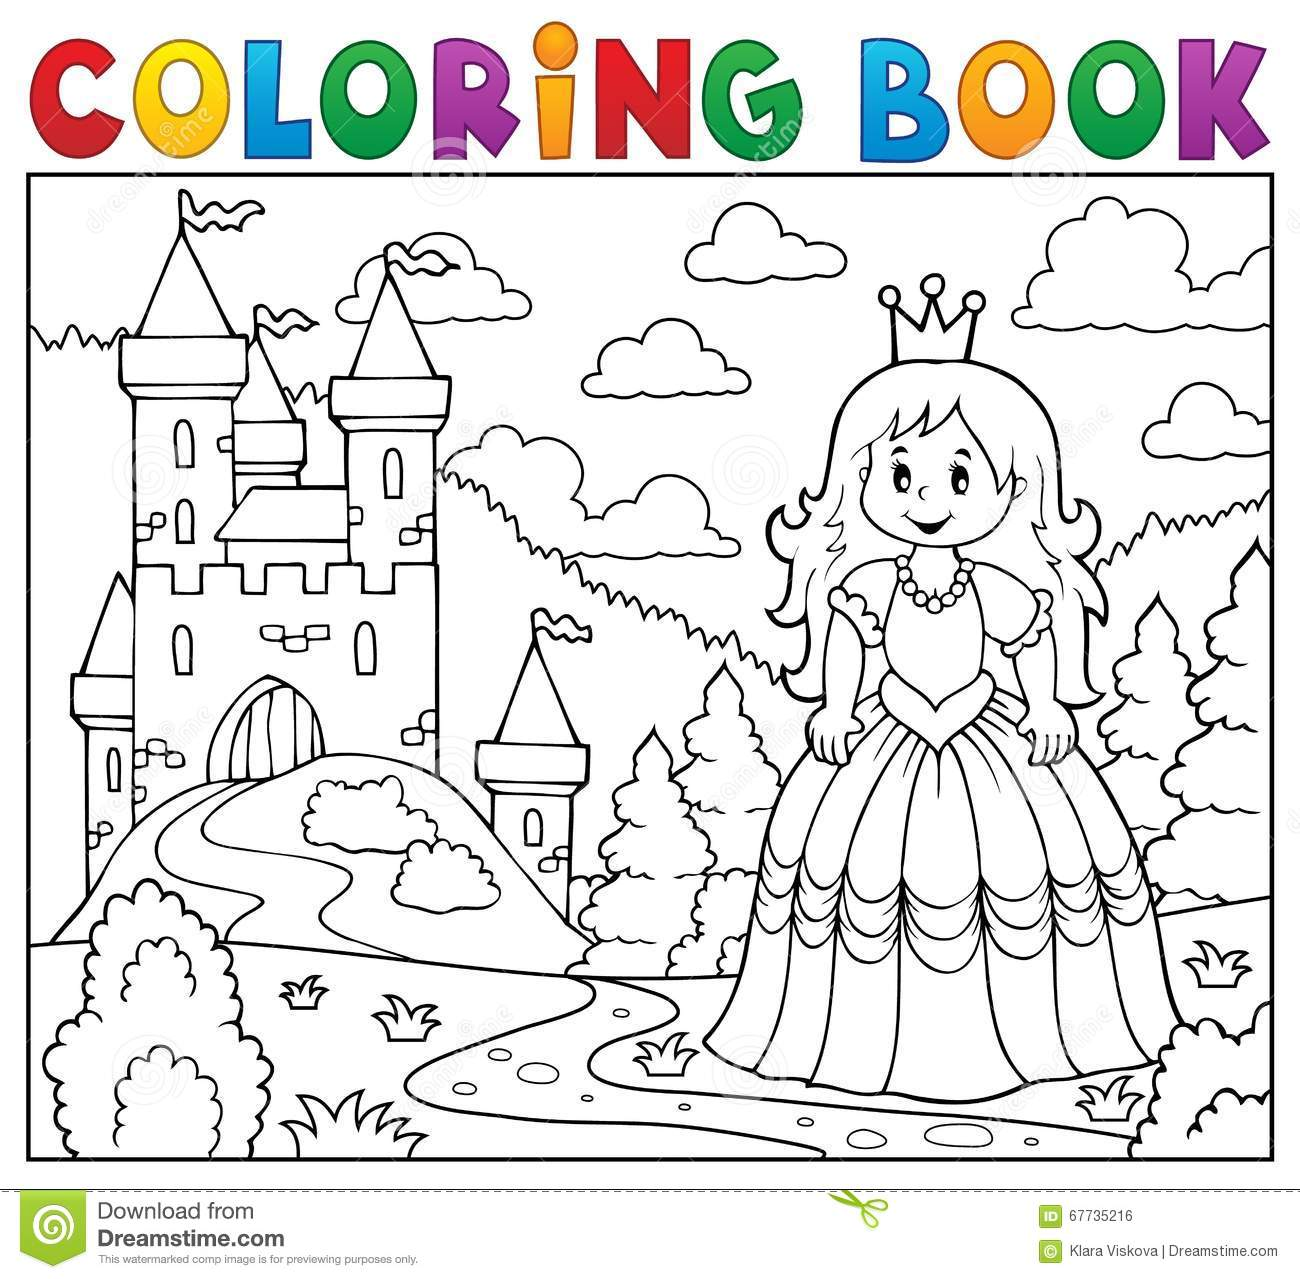 Princesse de livre de coloriage pr s de ch teau illustration de vecteur illustration du - Coloriage chateau de princesse ...